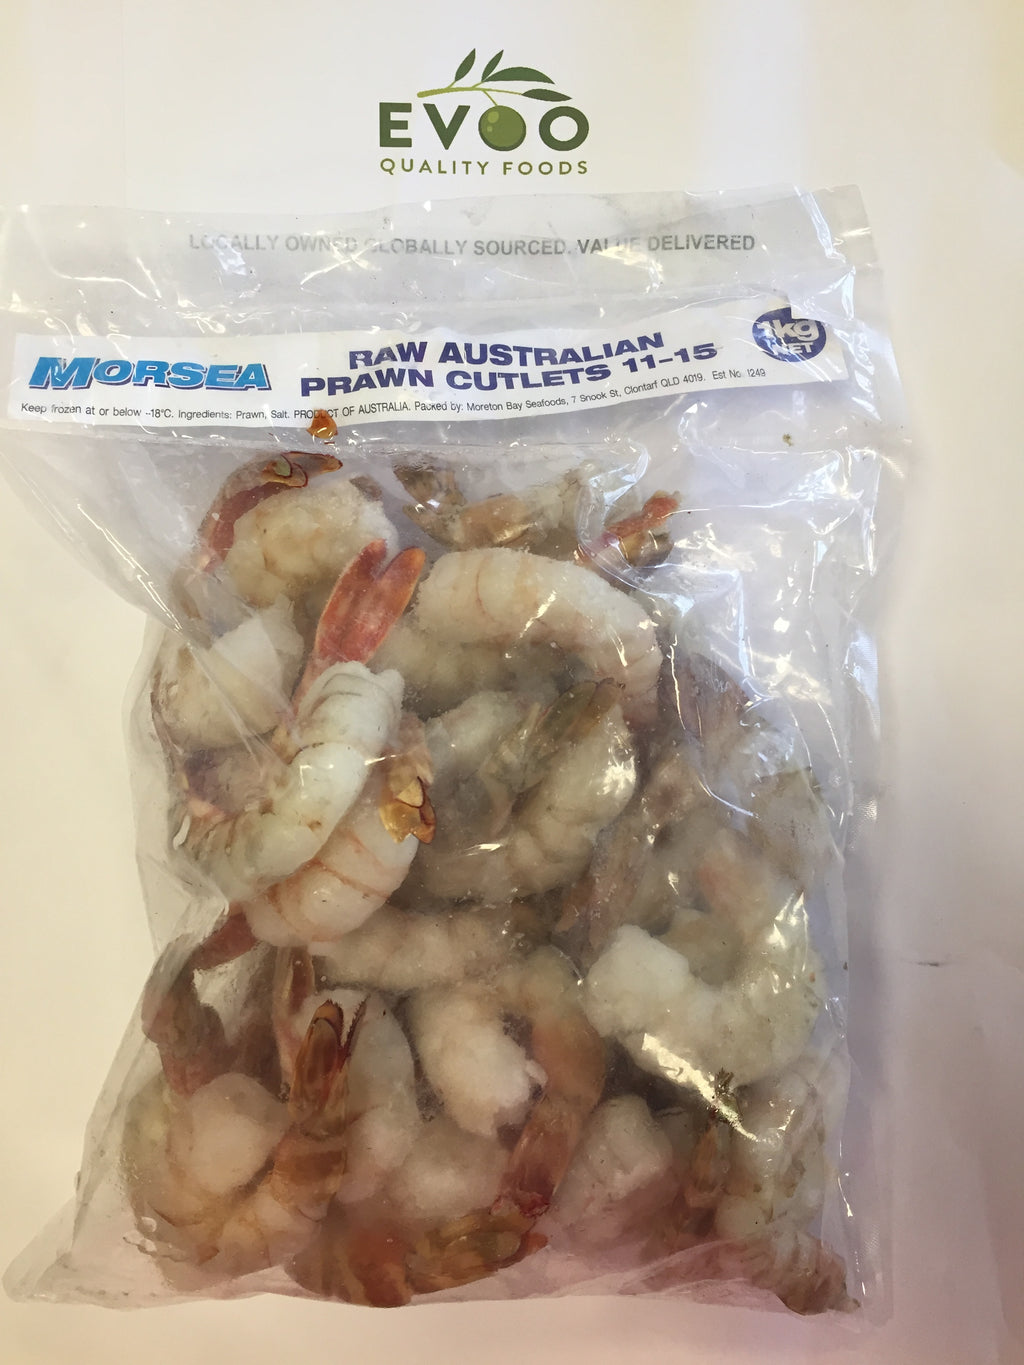 Tiger Prawn Cutlets Raw Australian 11-15 IQF 1kg Morsea